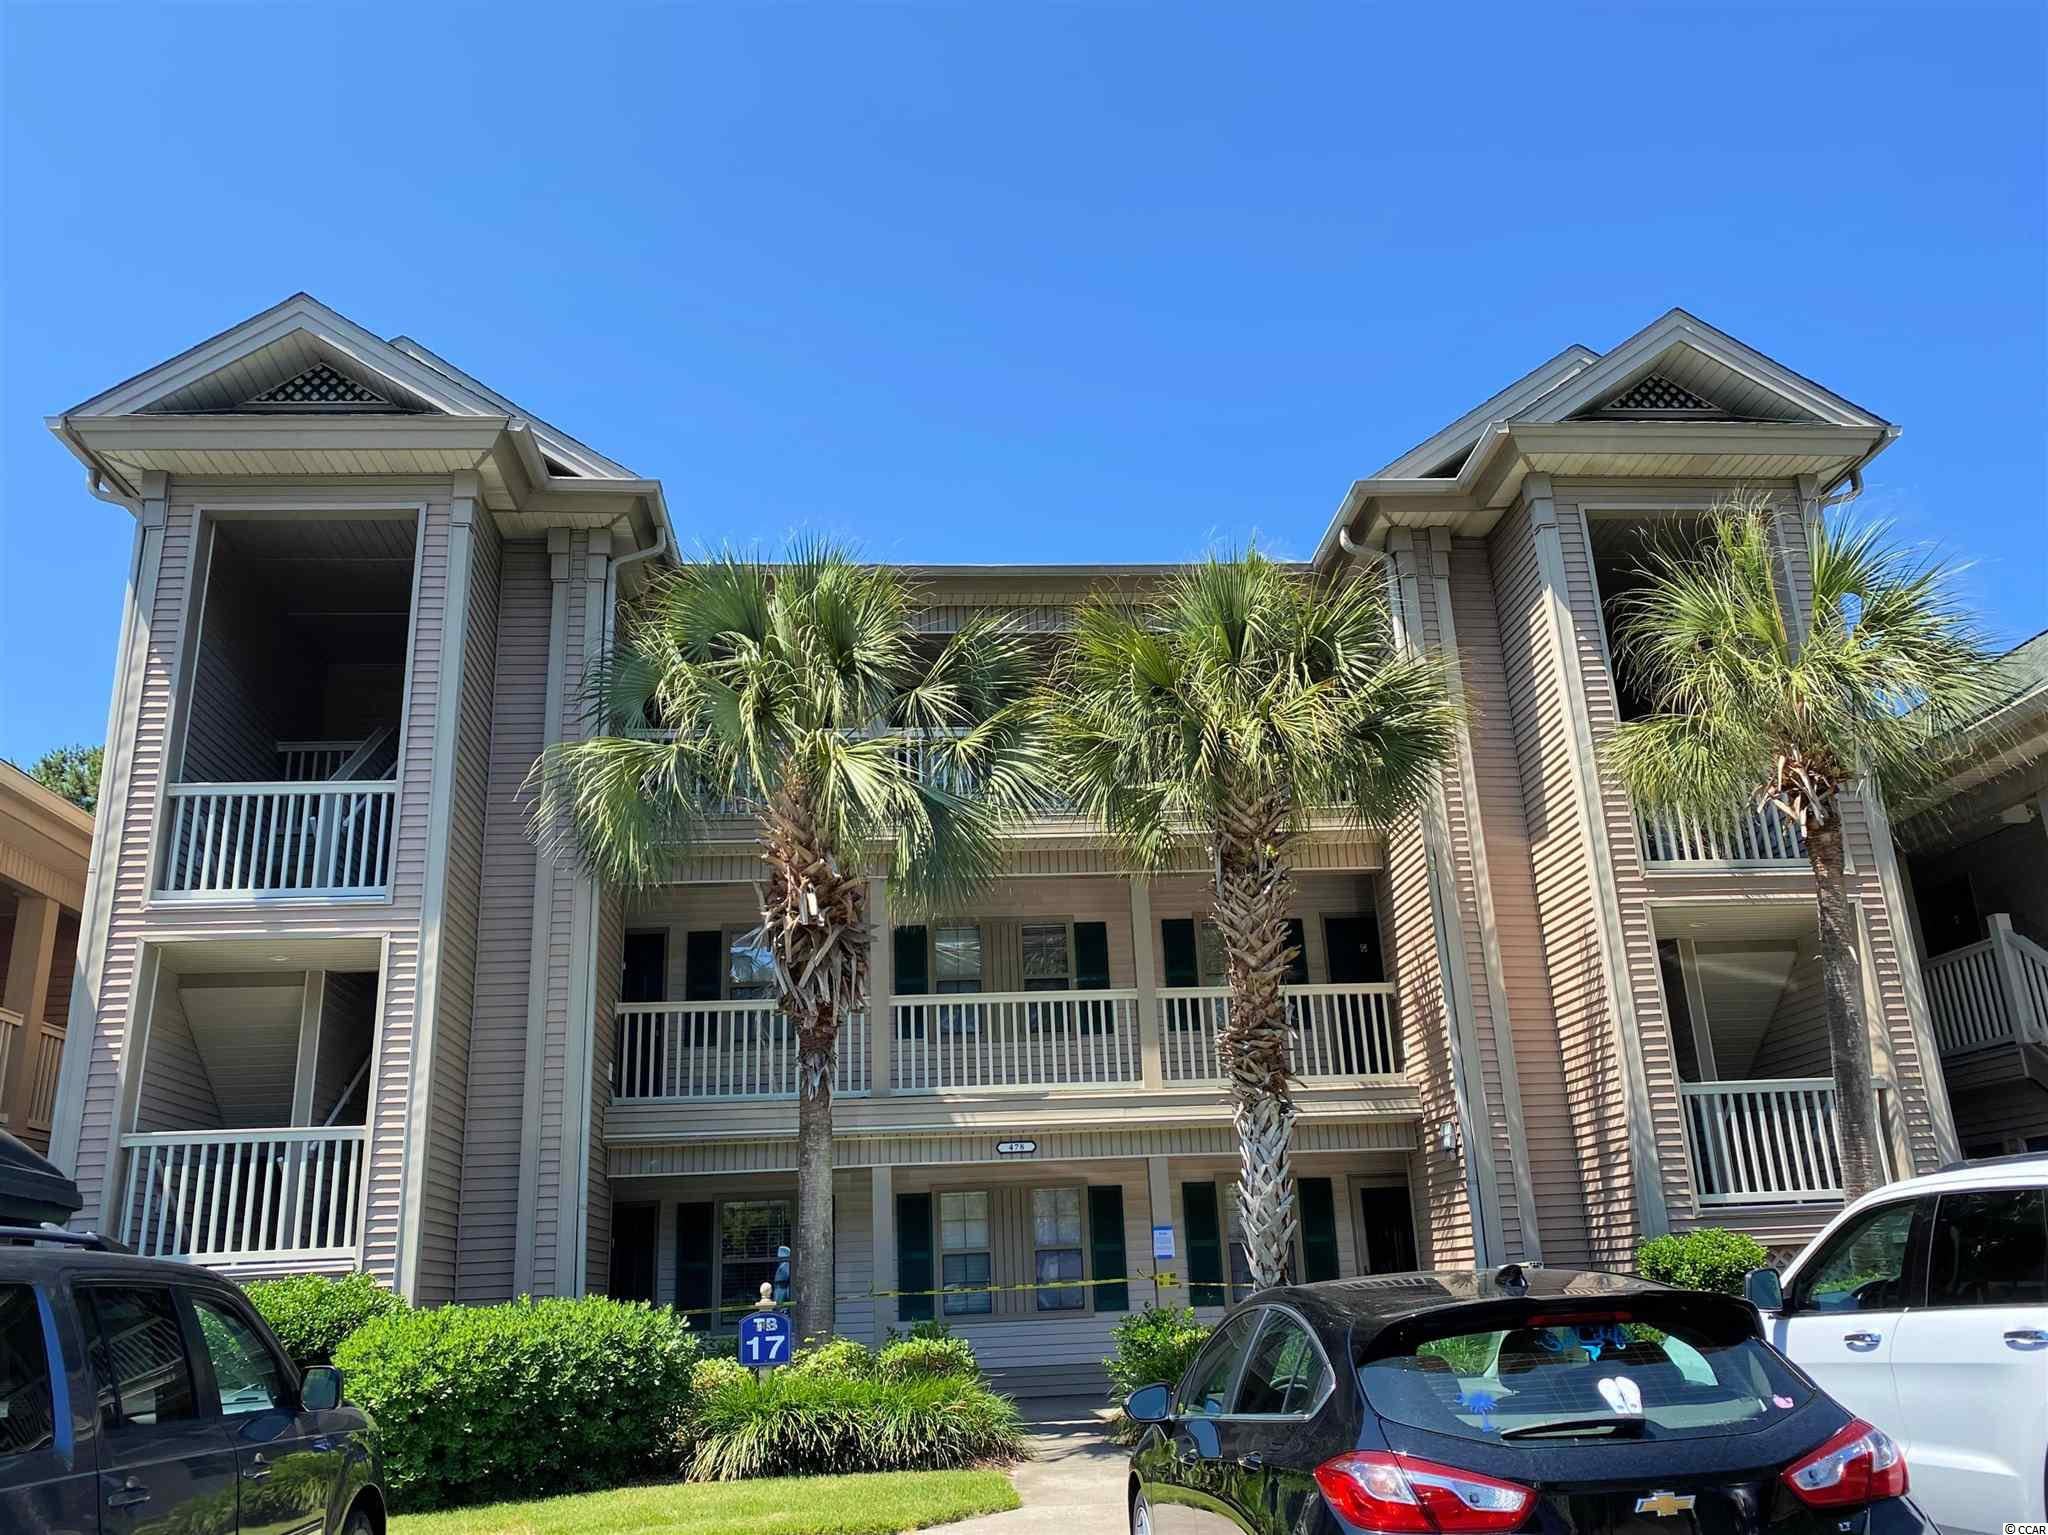 This is the best True Blue condo you'll never see! Perfect for the Pawleys Island investor who wants to rent, the tenent prefers no showings, so it cannot be seen, except by the owner, until the lease is up on 2/28/22. It's on the second floor, with a golf/water view, 2 bedrooms, 2 baths, vinyl tile in kitchen and baths, carpet in living and bedrooms. (Ask about the re-decorating allowance.) Building 17 is located on the most private side of True Blue, almost at the end of Pinehurst Lane, right across the street from the pool!